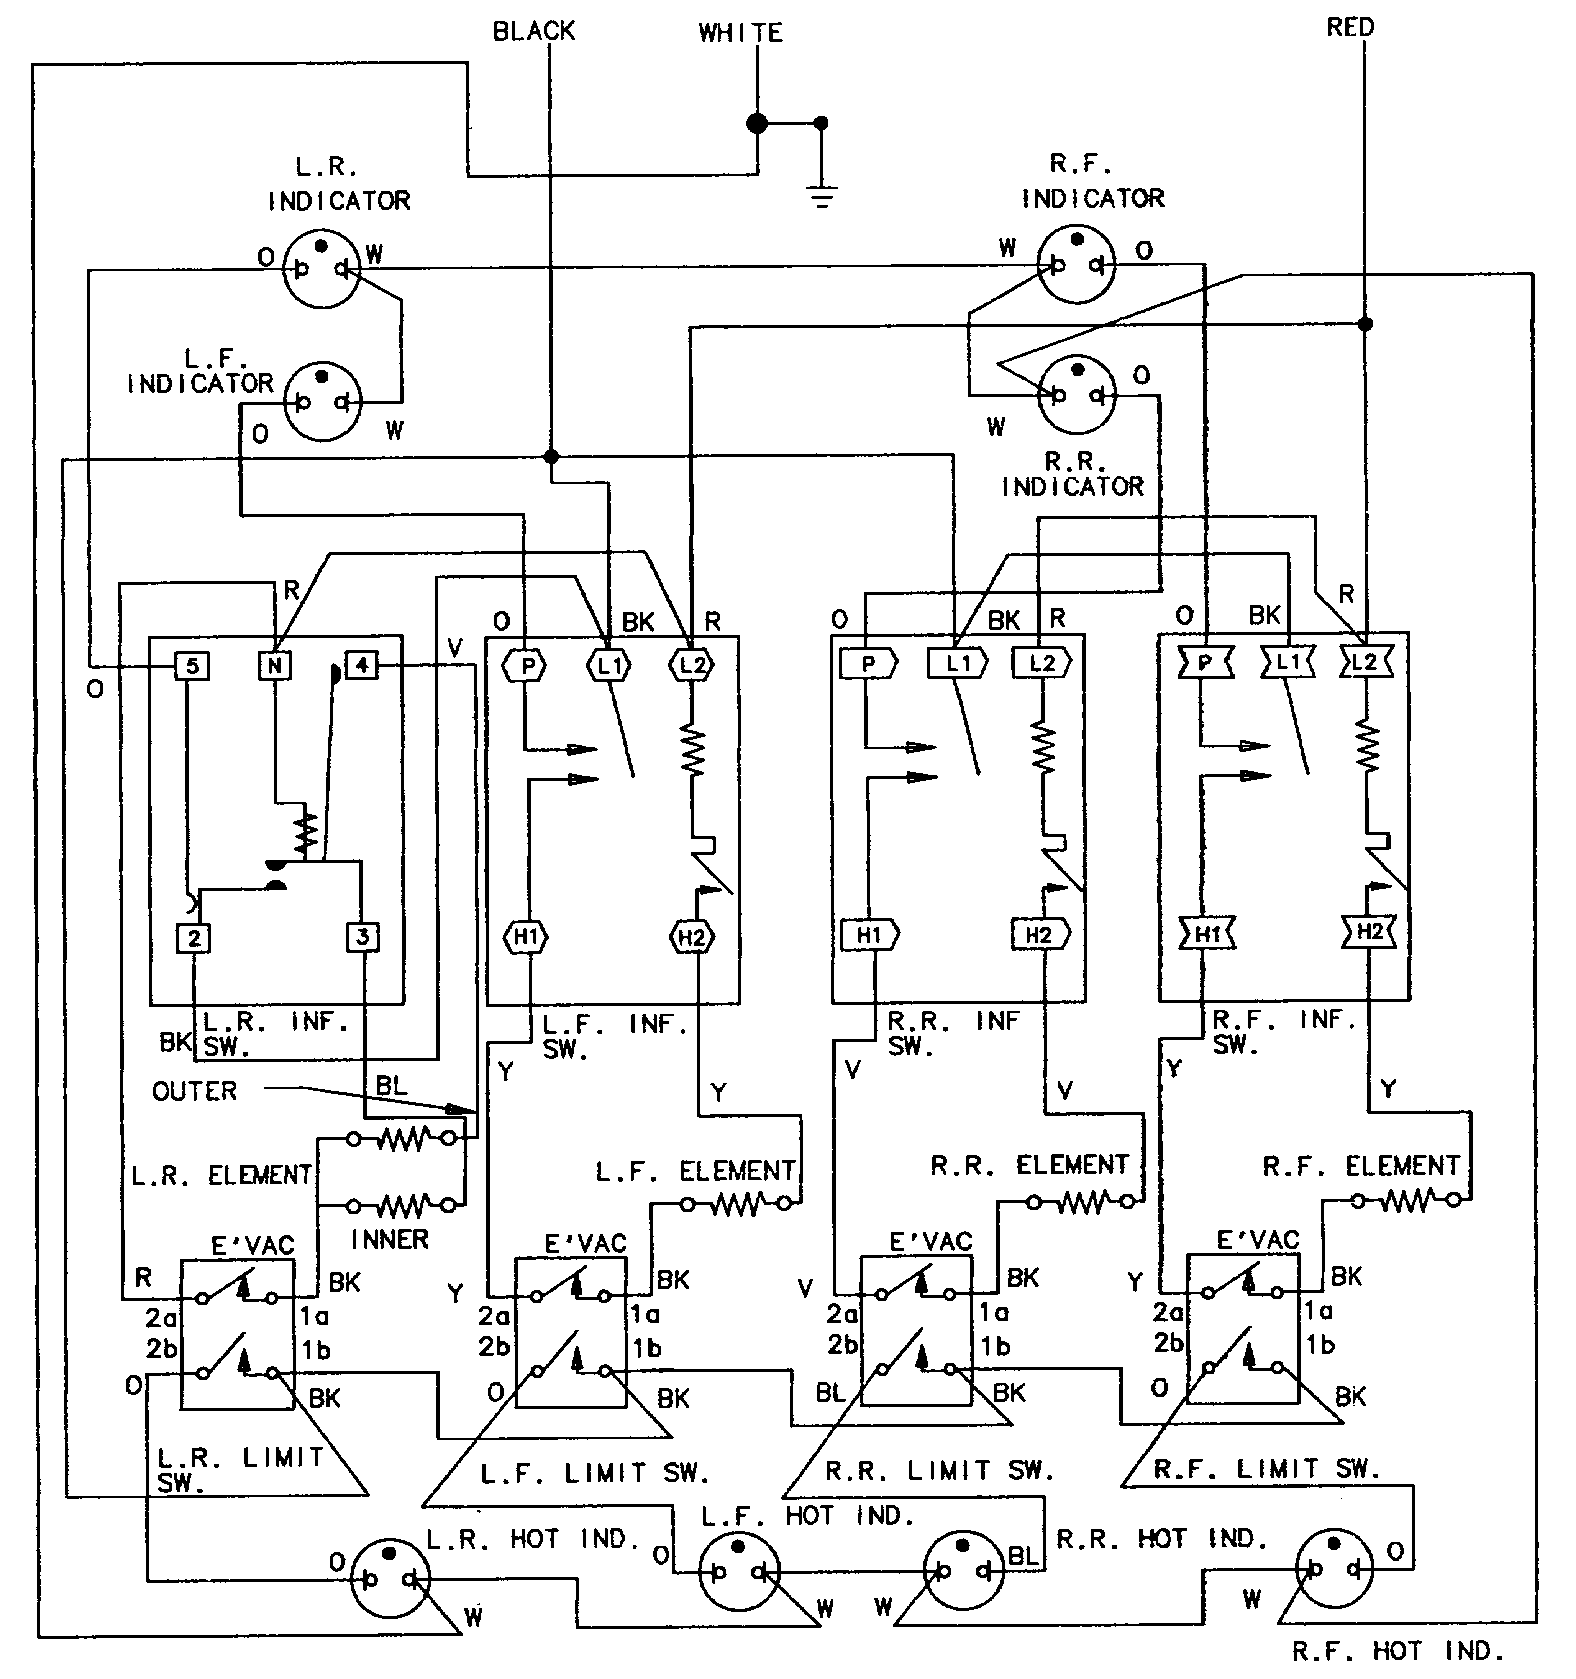 stove and oven wiring diagram [ 1576 x 1679 Pixel ]